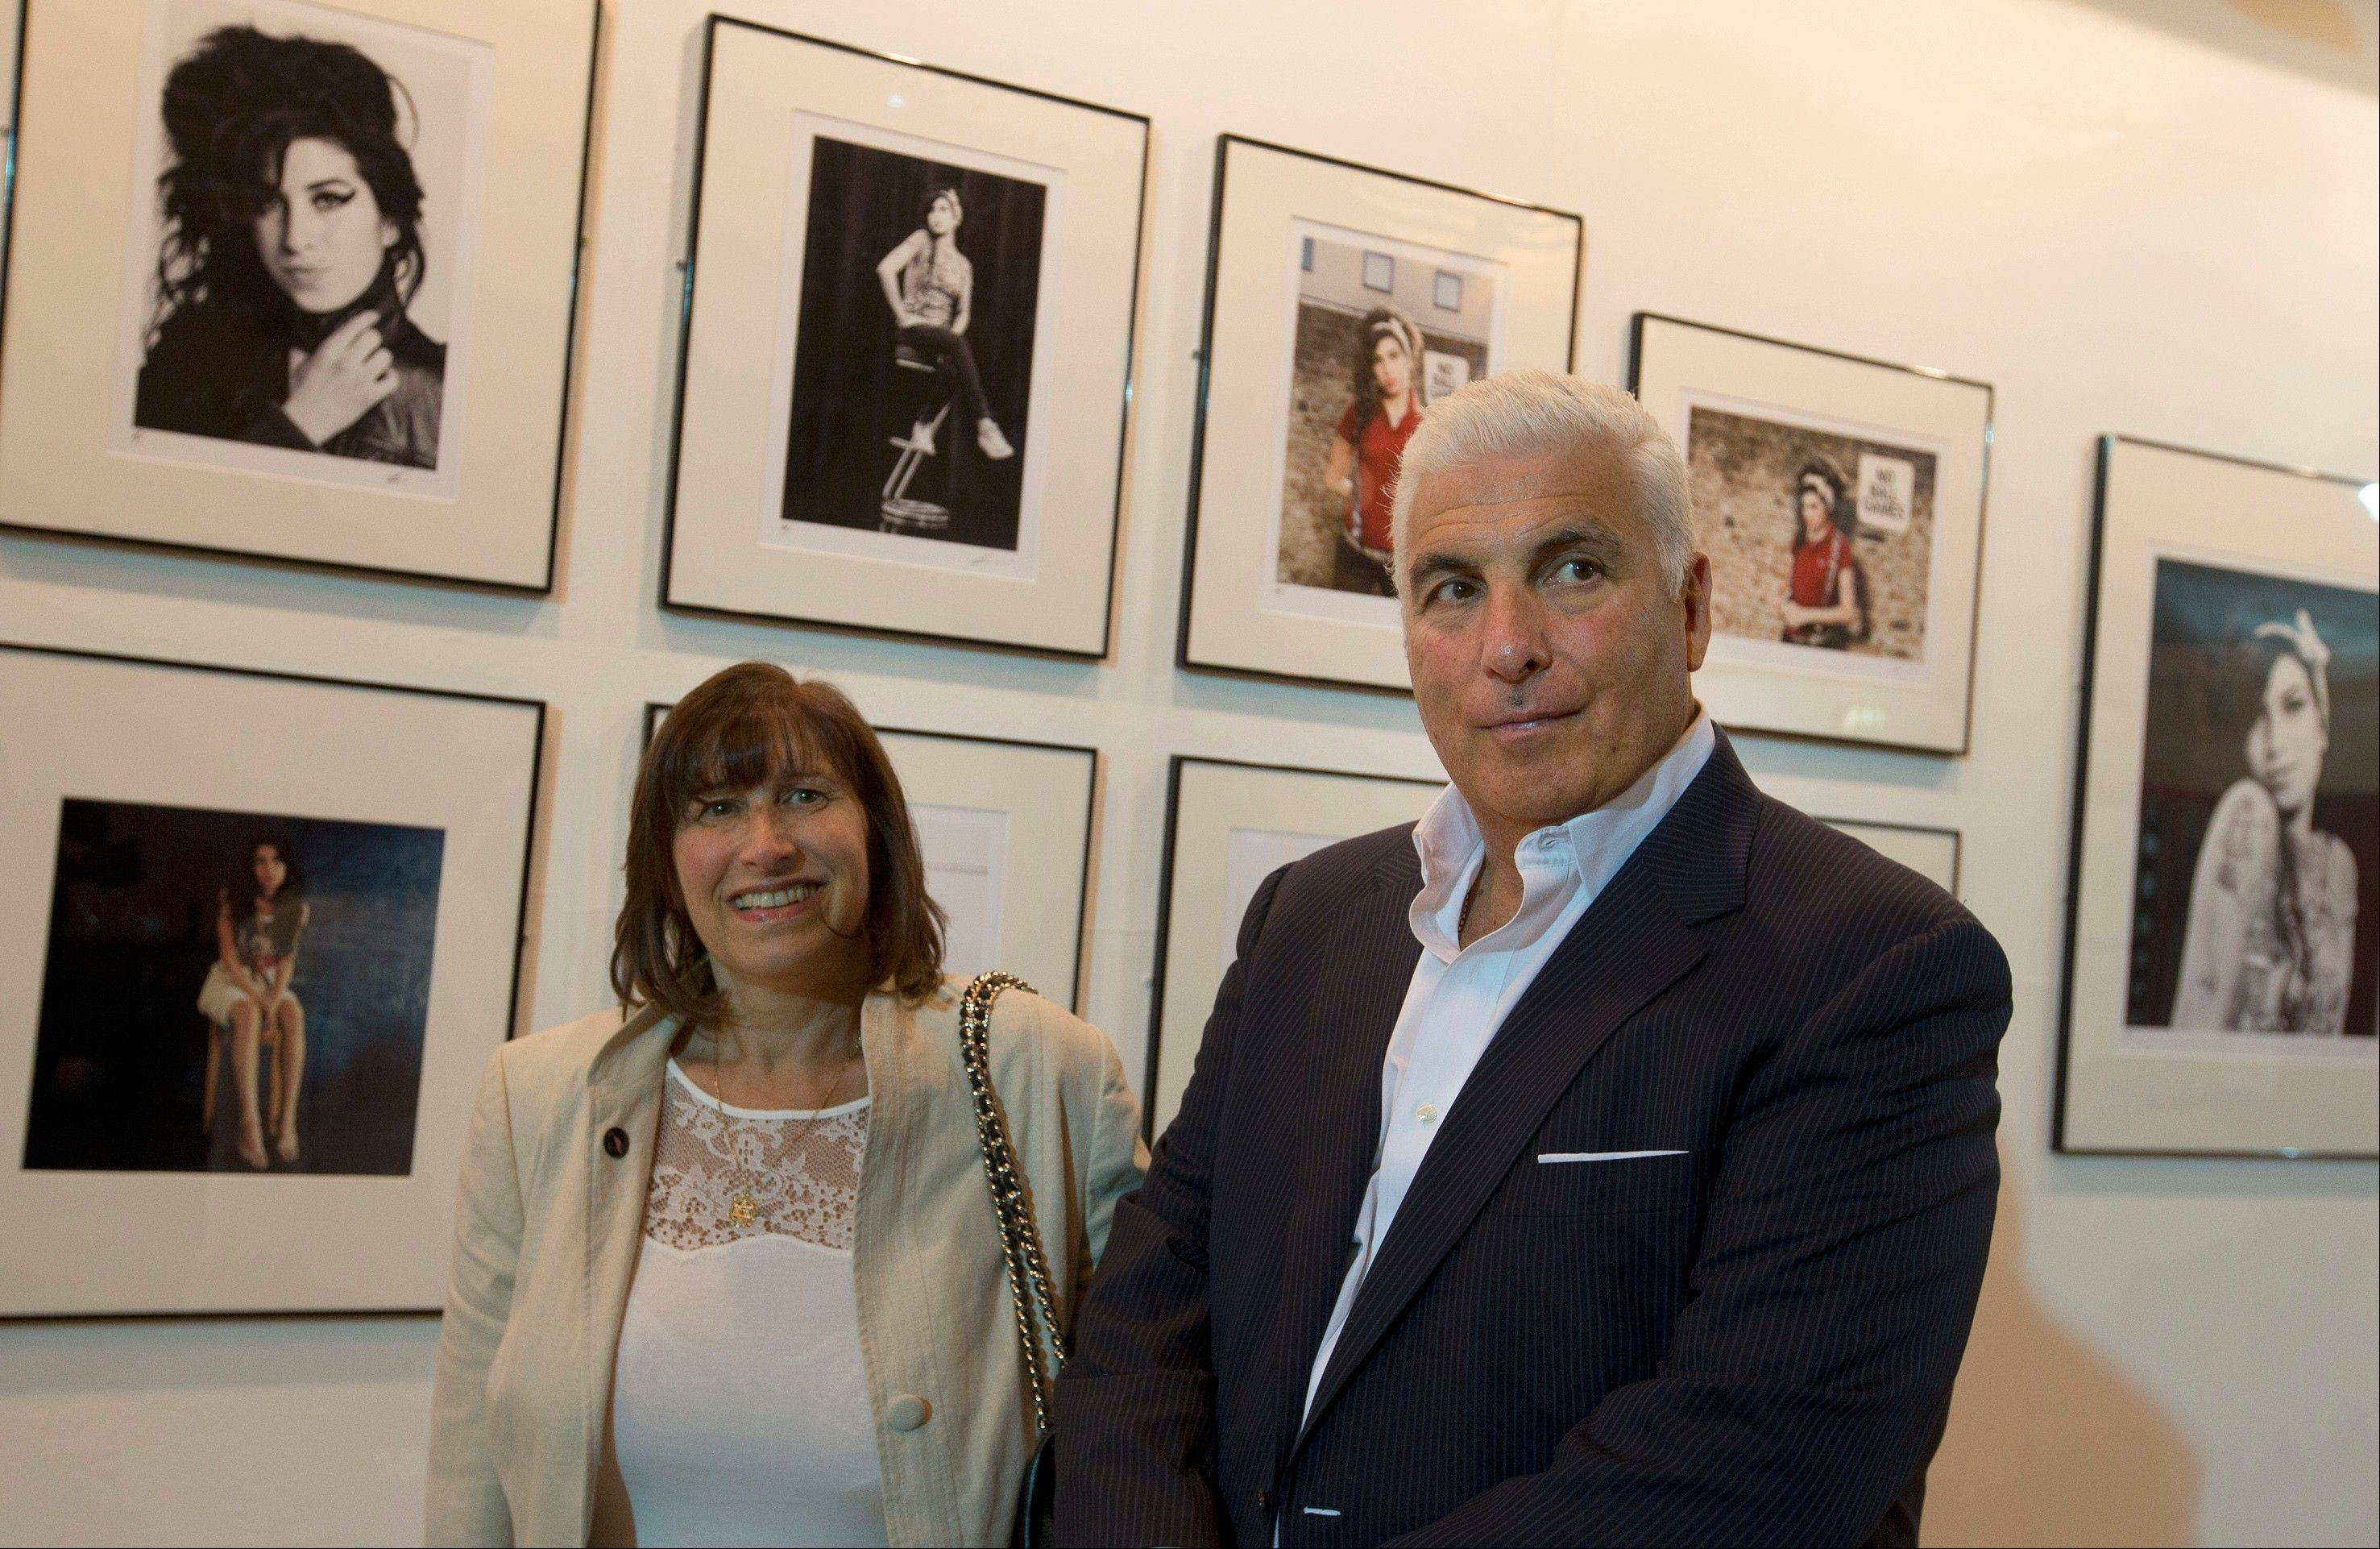 Janice and Mitch Winehouse mother and father of the late British singer Amy in front of portraits of their daughter at the Proud gallery in Camden, London.